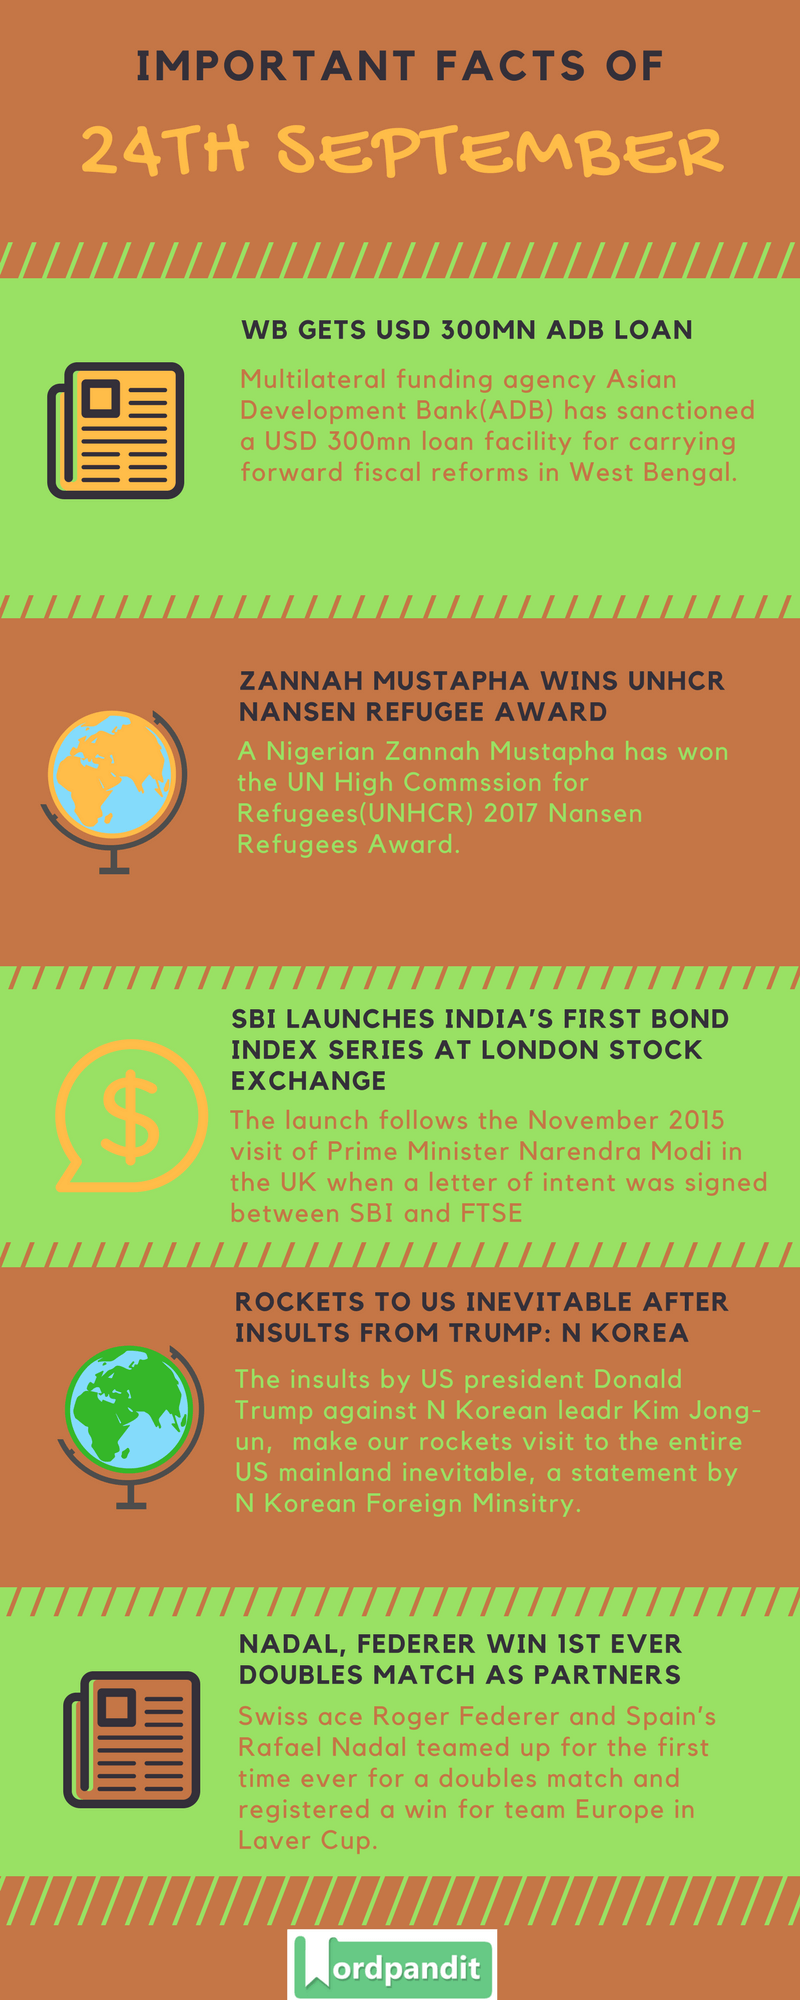 Daily-Current-Affairs-24-september-2017-Current-Affairs-Quiz-september-24-2017-Current-Affairs-Infographic